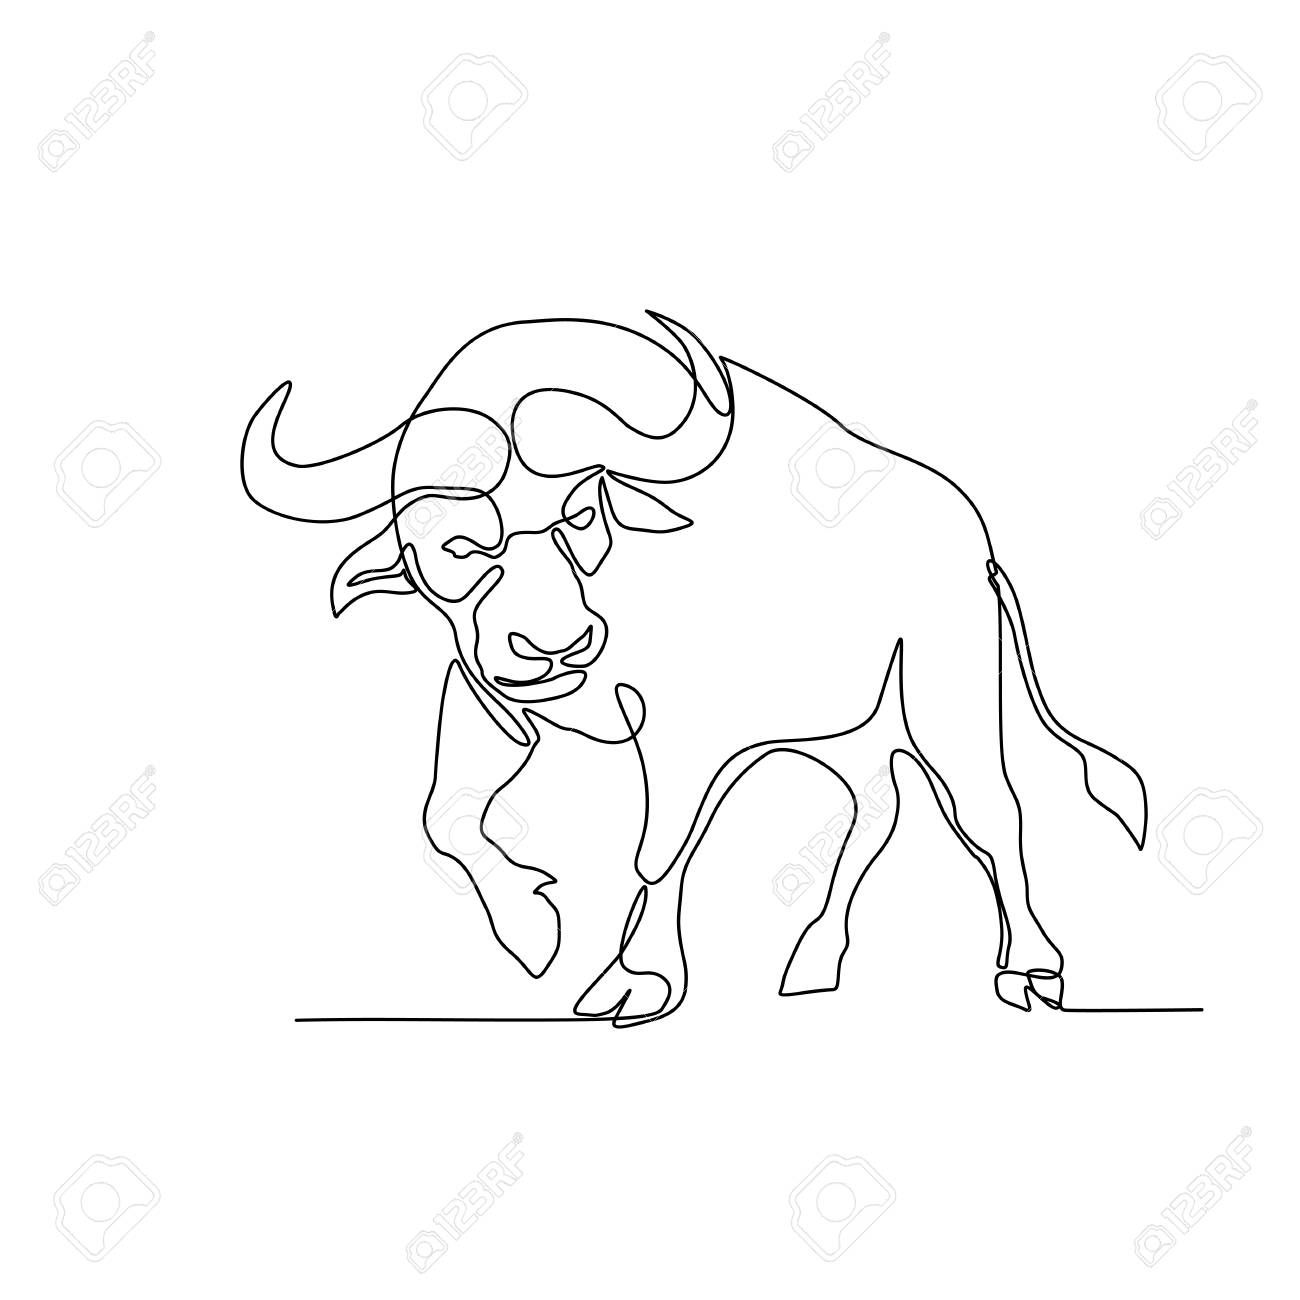 Continuous Line Illustration Of An African Buffalo Or Cape Buffalo A Large African Bovine About To Charge Line Art Drawings African Buffalo Line Illustration